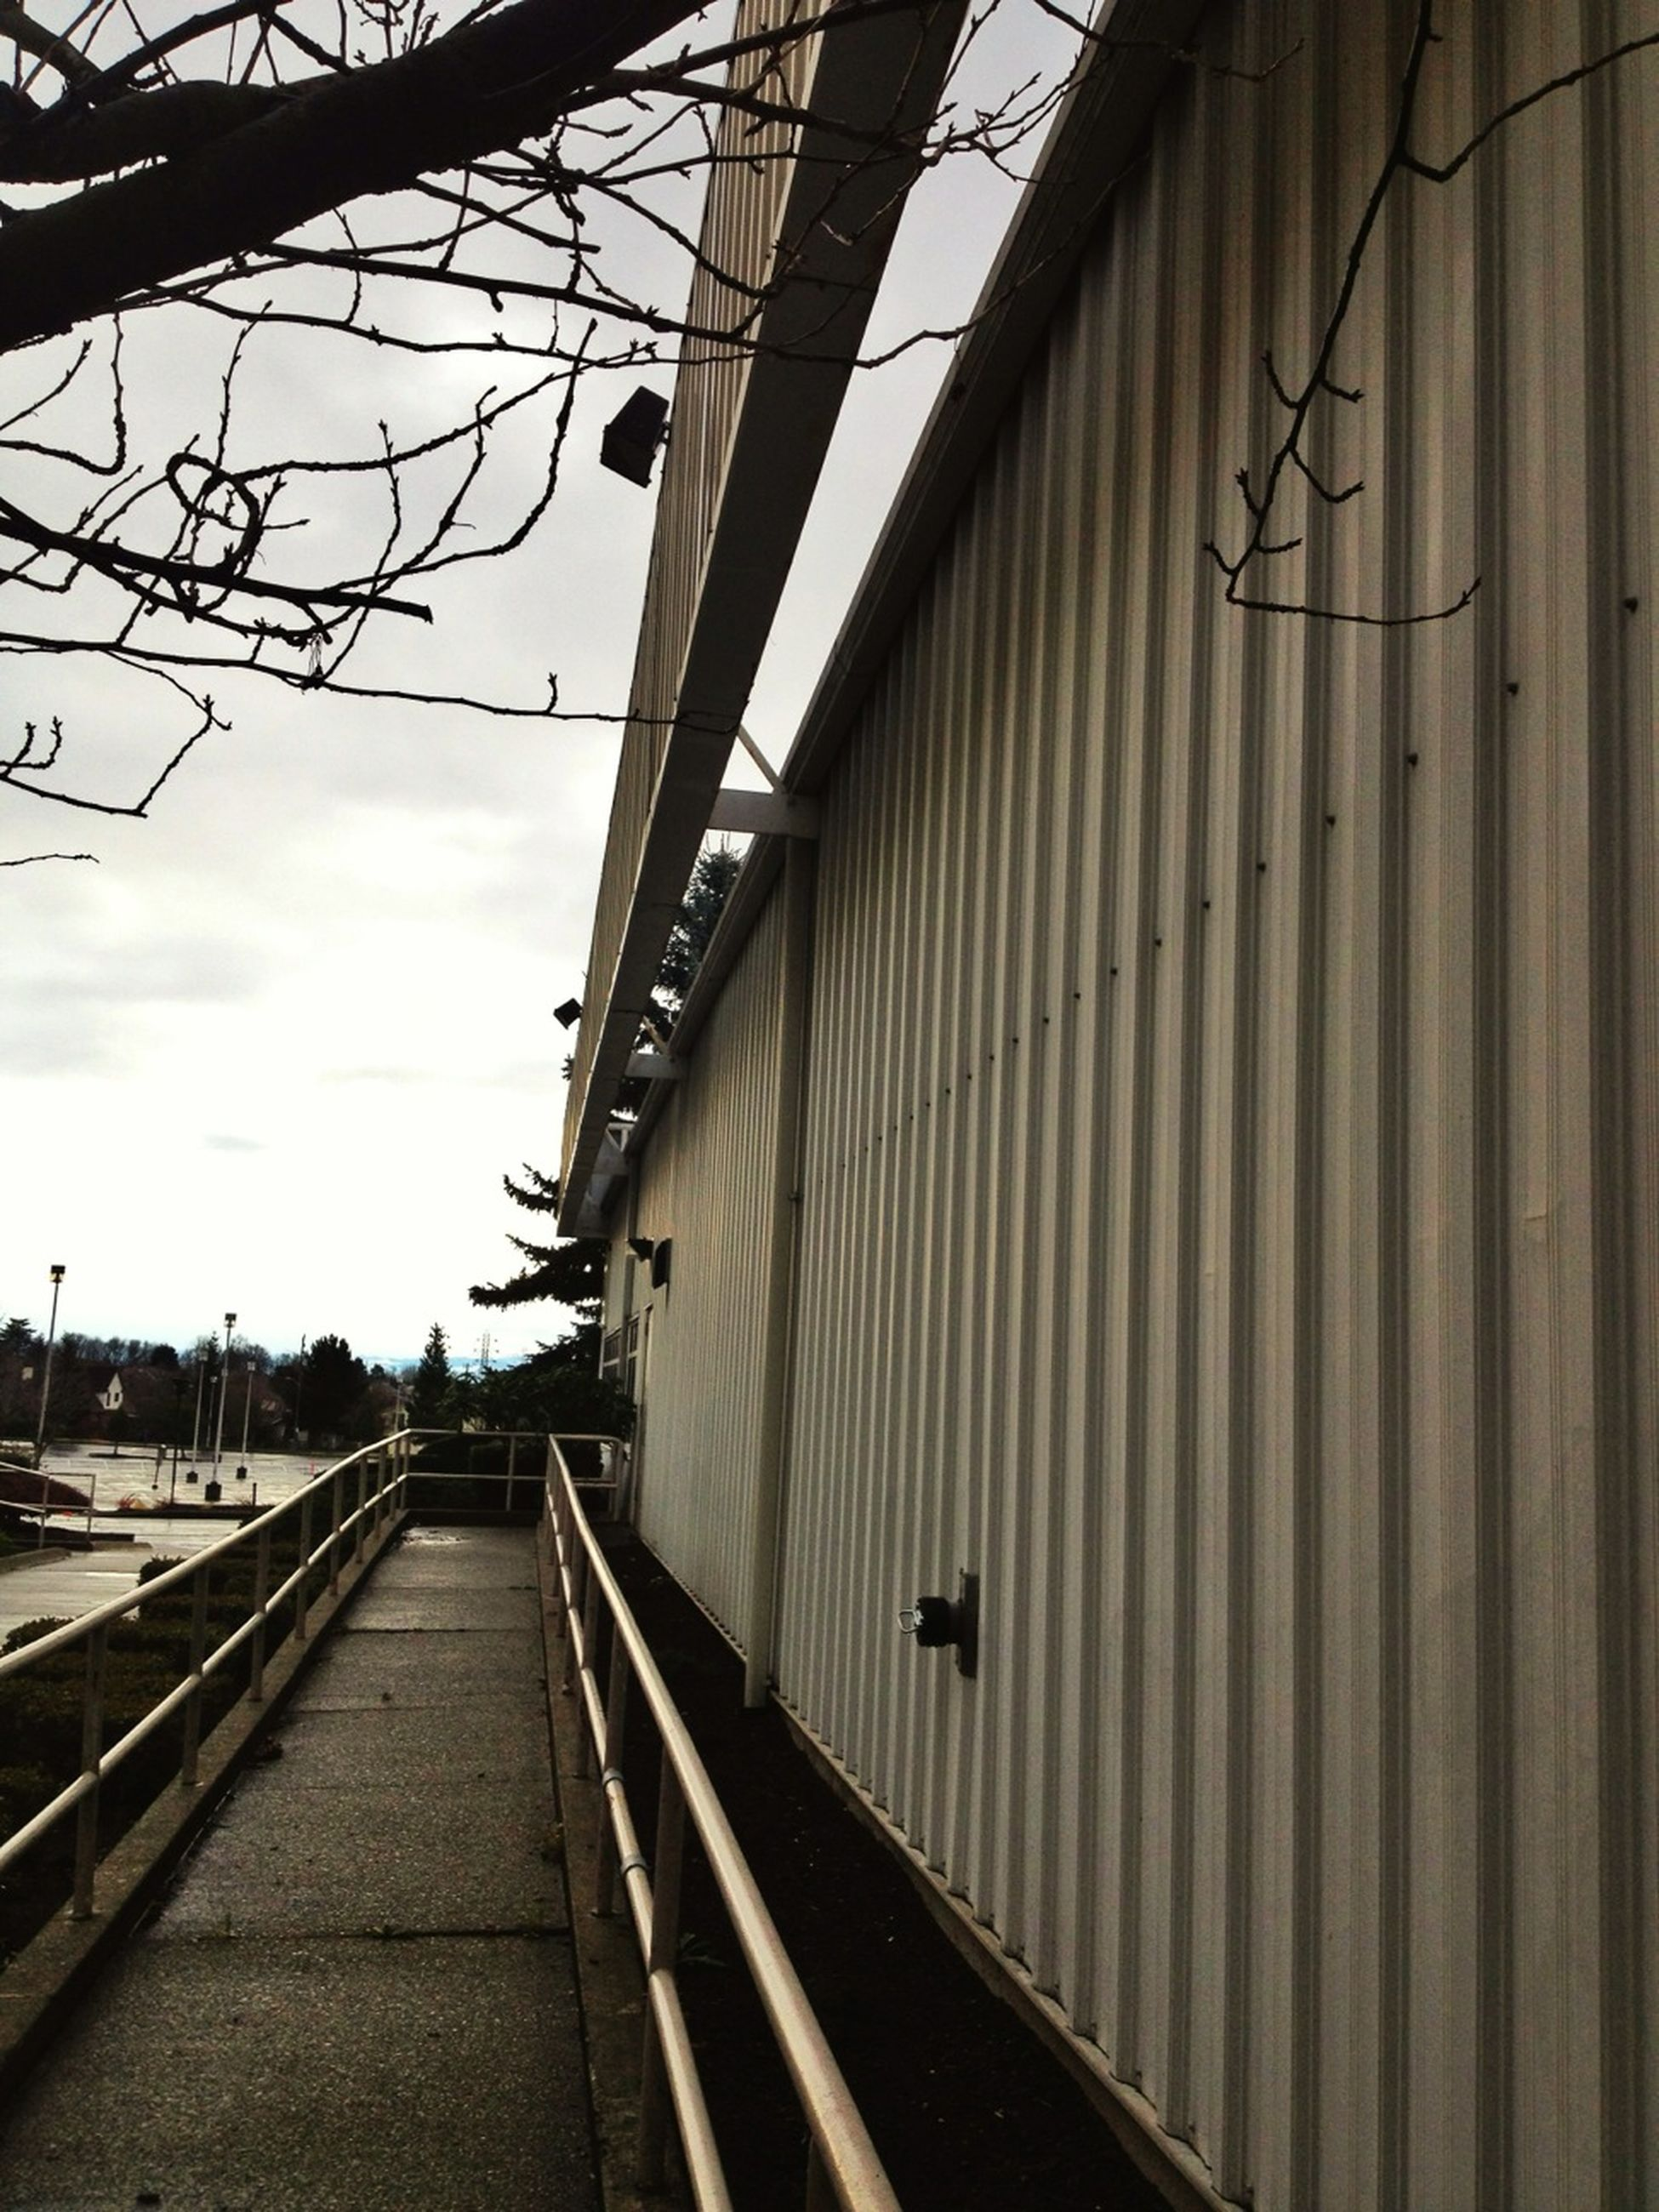 architecture, built structure, the way forward, railroad track, diminishing perspective, transportation, building exterior, rail transportation, vanishing point, sky, railing, public transportation, long, connection, railroad station, railroad station platform, city, day, narrow, railway track